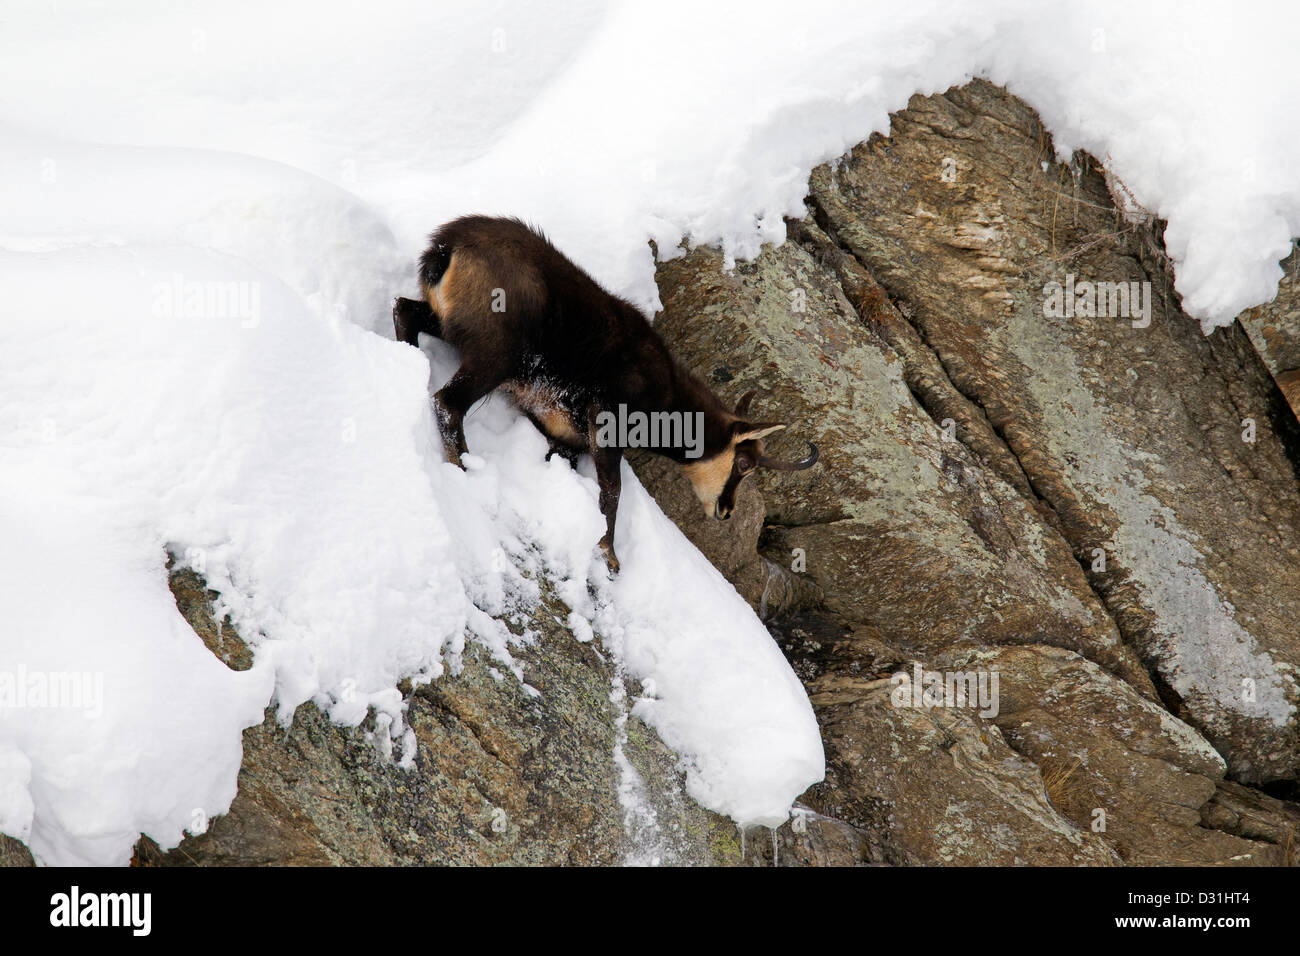 Chamois (Rupicapra rupicapra) coming down sheer rock face in the snow in winter - Stock Image